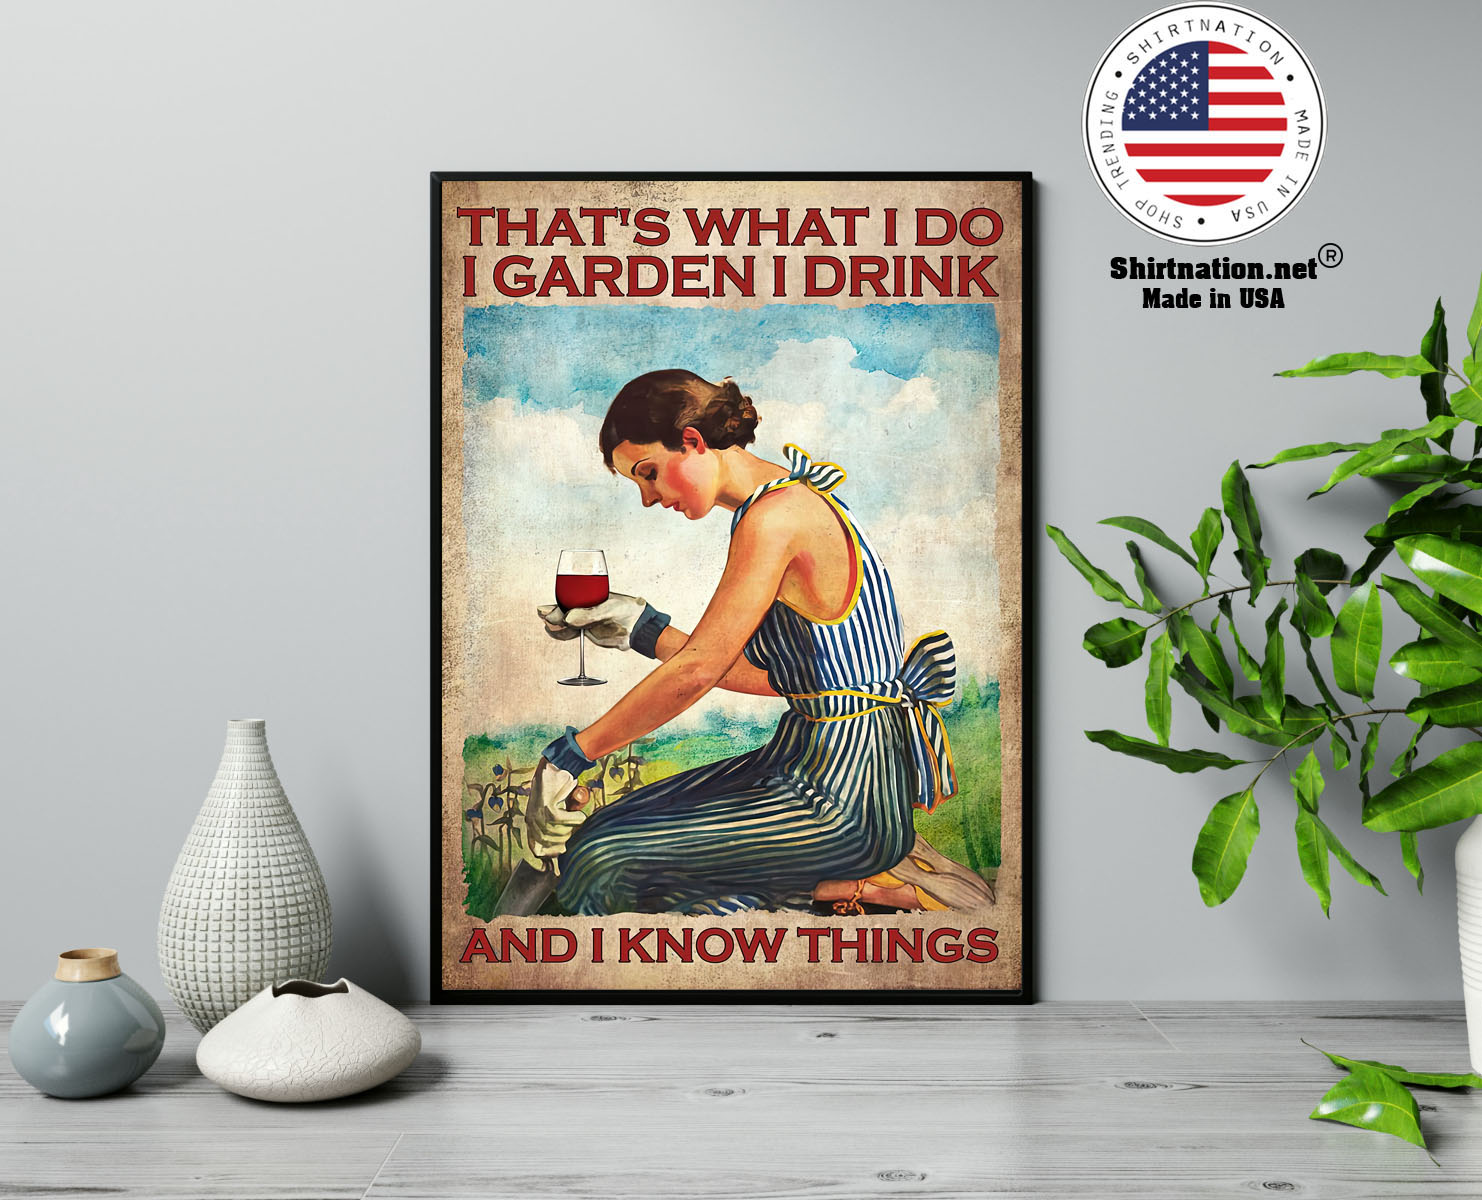 Wine Thats what I do I garden I drink and I know things poster 13 1